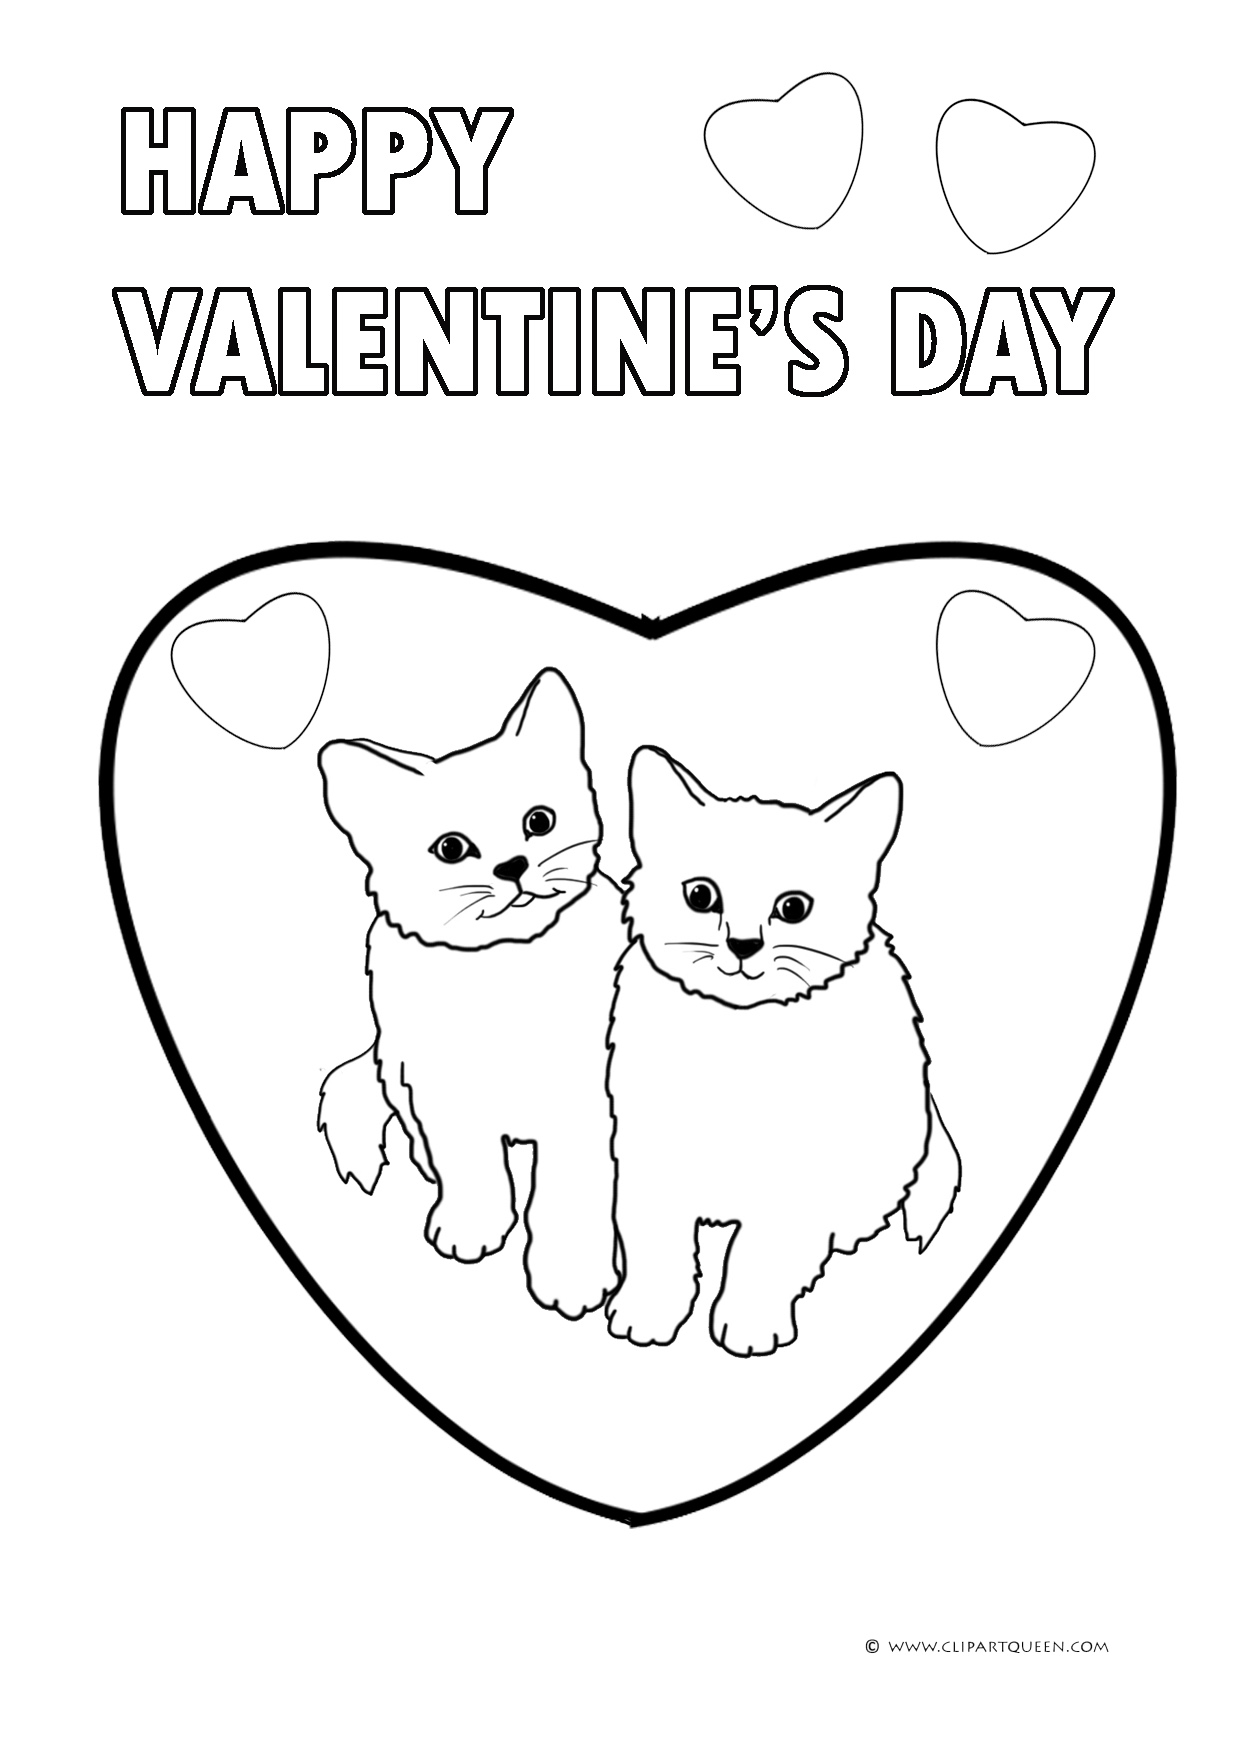 Cool Hearts Drawing at GetDrawings | Free download